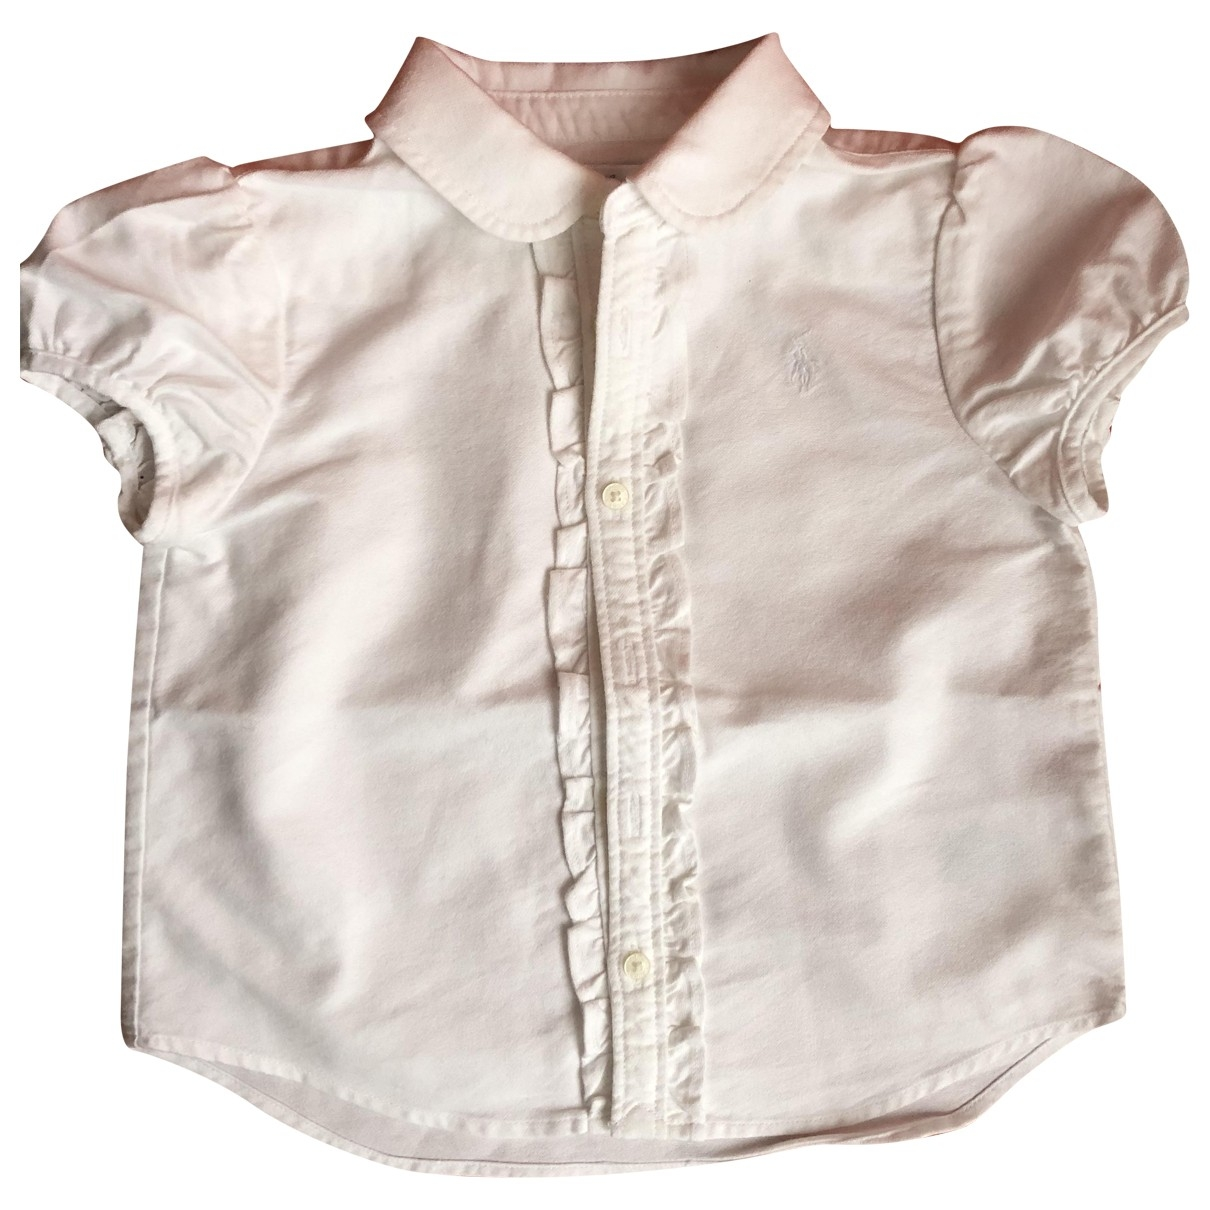 Ralph Lauren \N White Cotton  top for Kids 18 months - up to 81cm FR